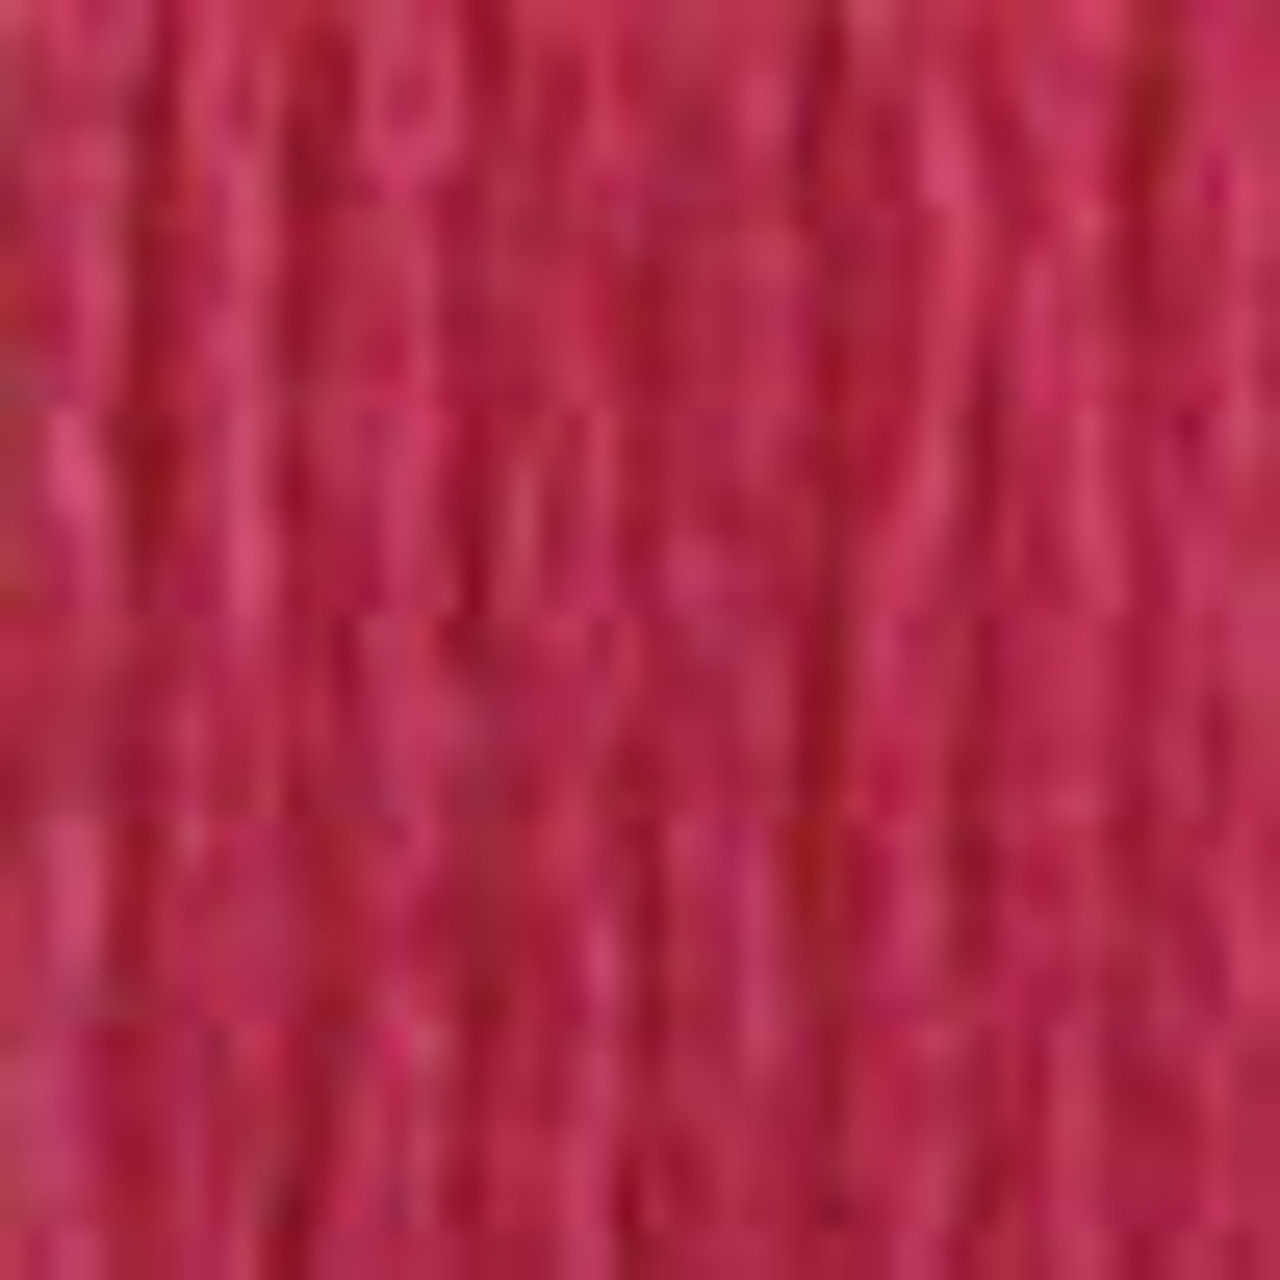 DMC # 3803 Dark Mauve Floss / Thread